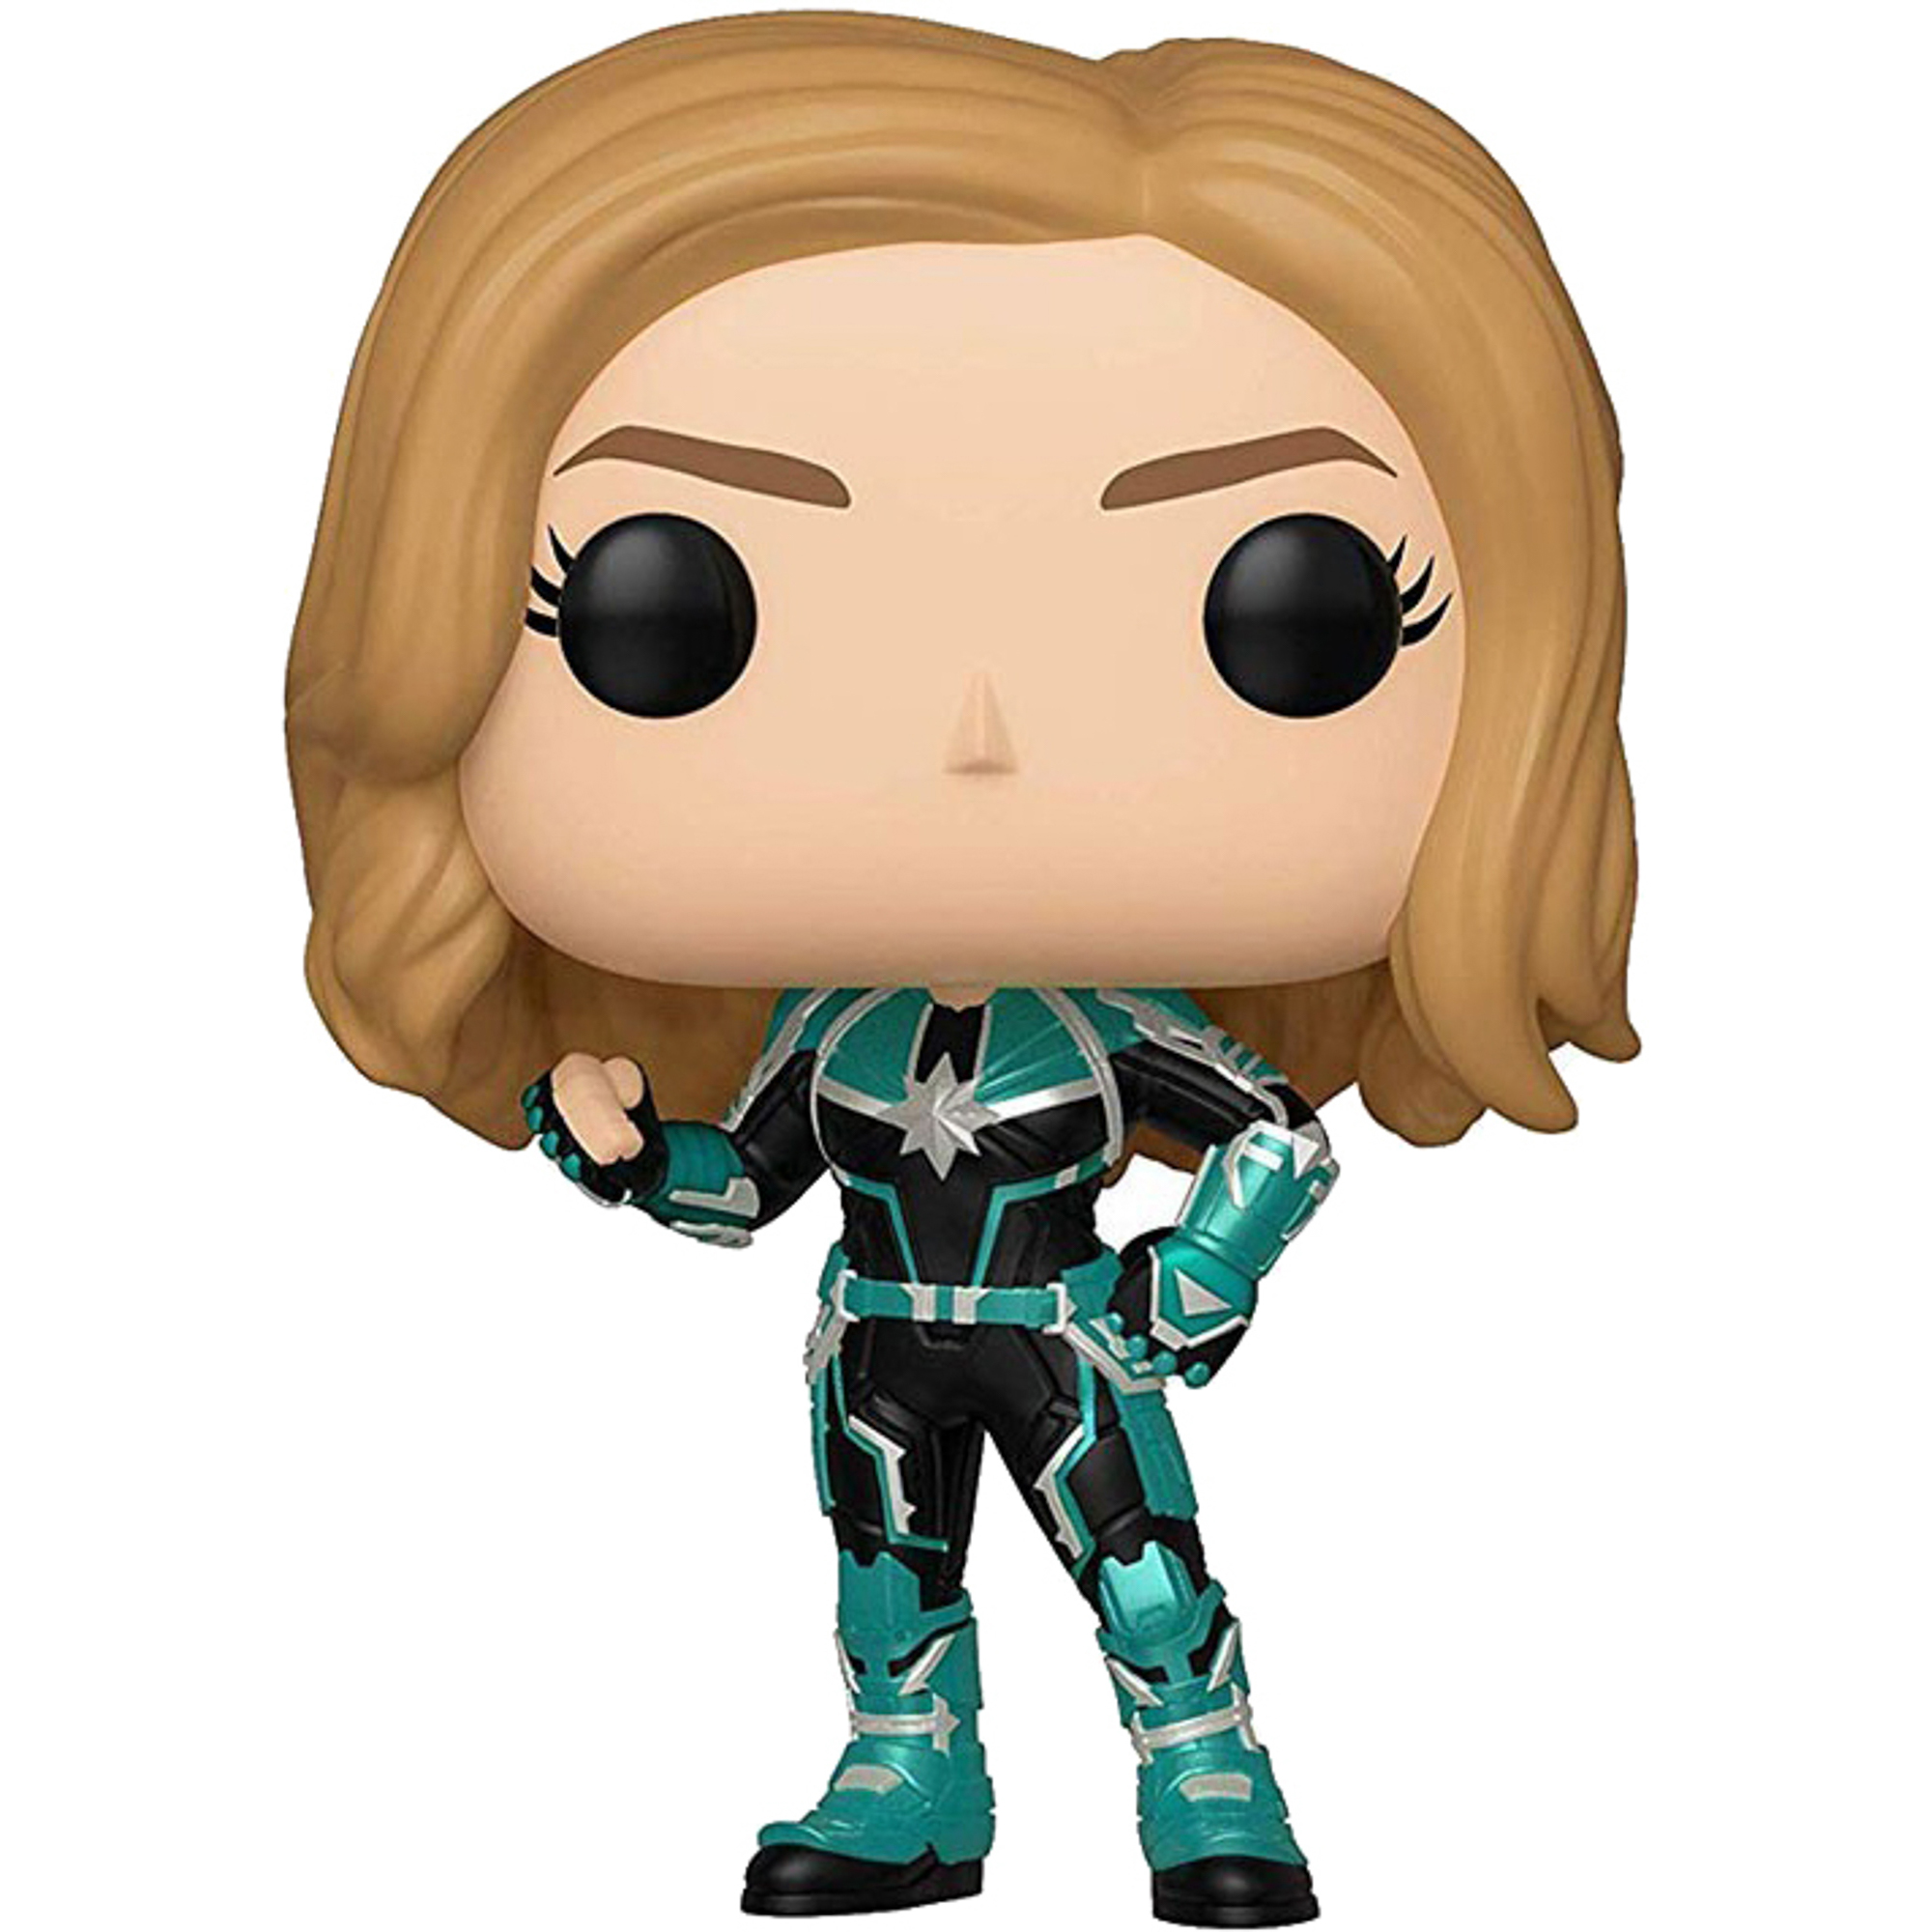 Фигурка Funko Captain Marvel Vers 427 фигурка funko pop captain marvel мария рамбо 37585